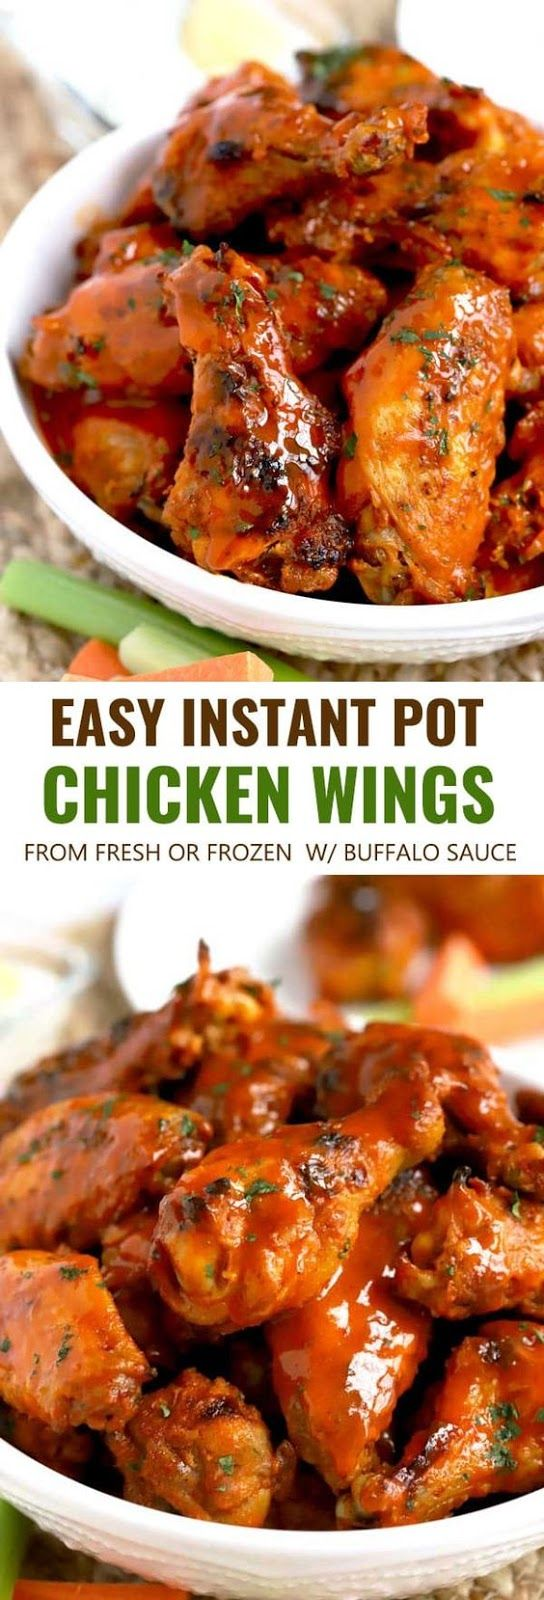 Easy Instant Pot Chicken Wings From Fresh Or Frozen Grace Delicious Instantpot In 2019